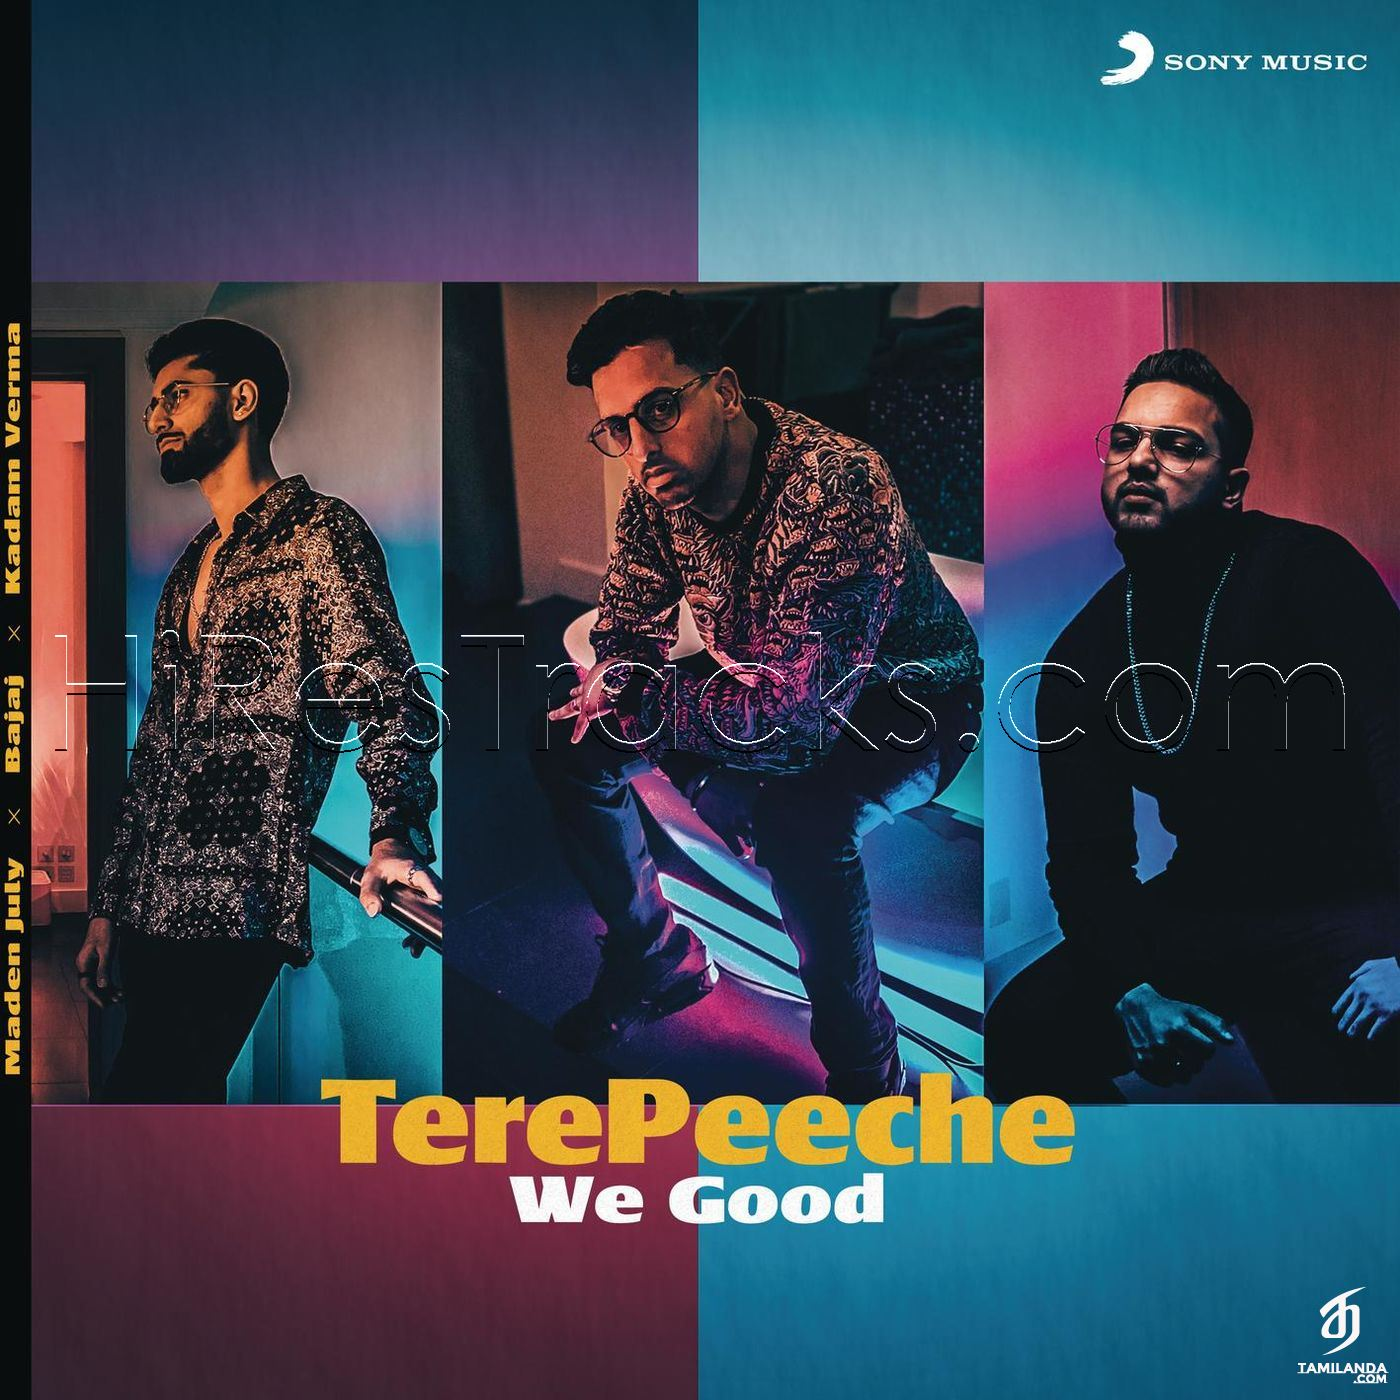 Tere Peeche (We Good) (2019) (Maden July) (Sony Music) [Digital-DL-FLAC]